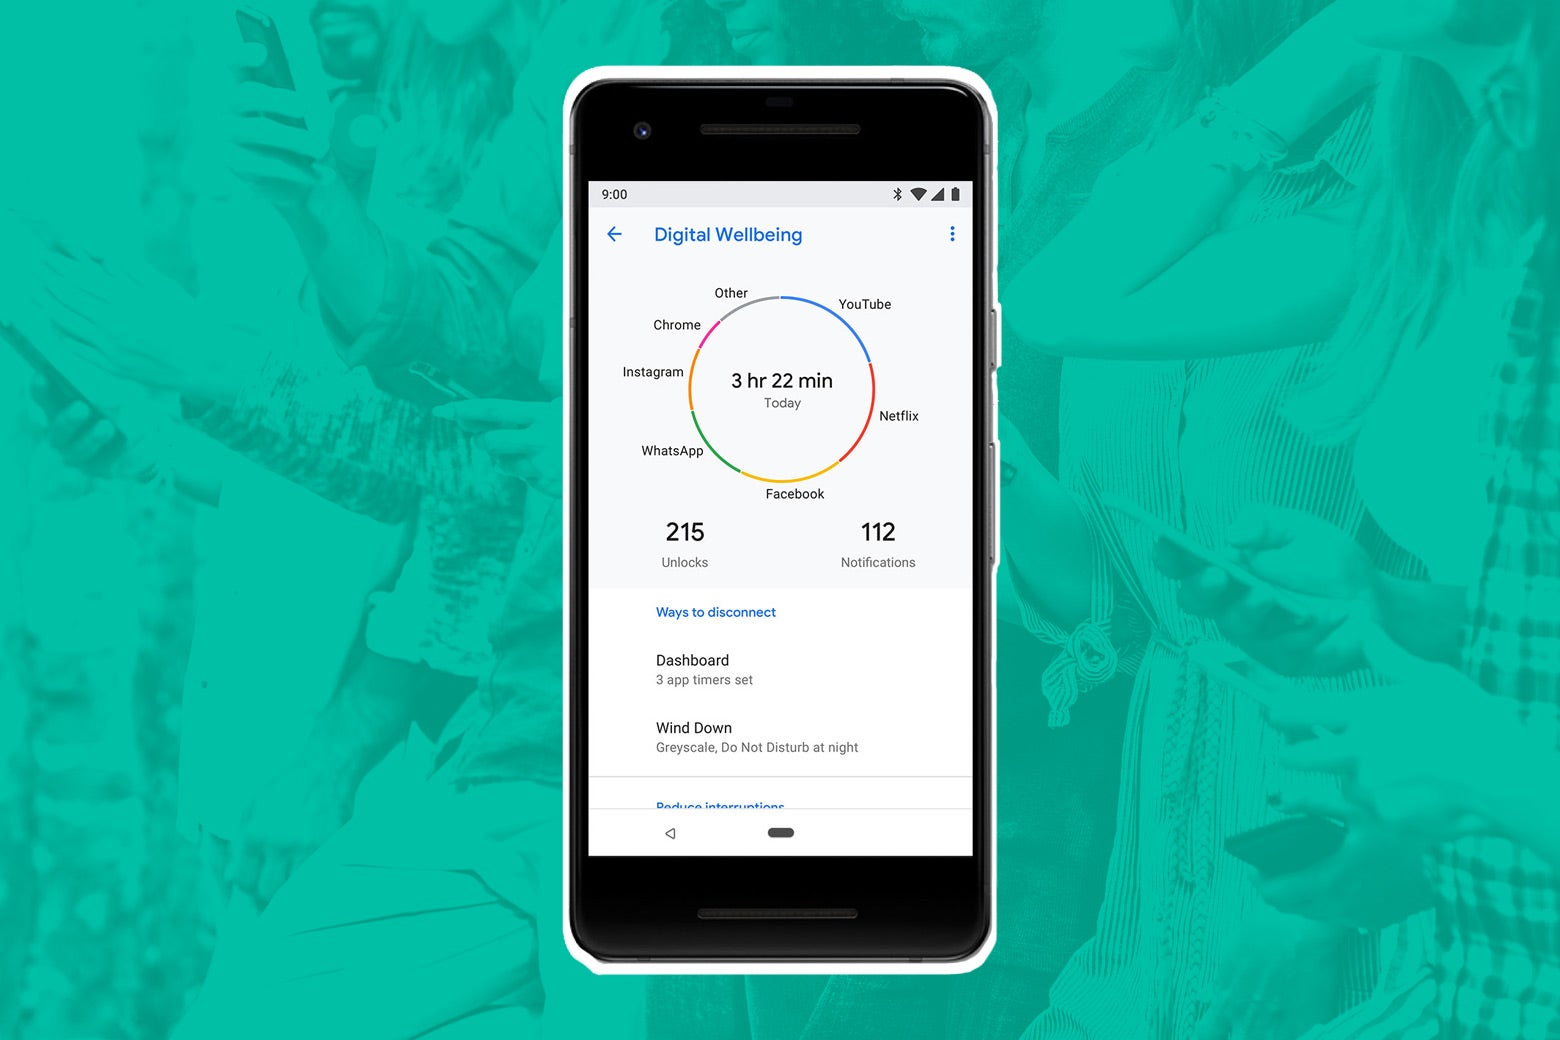 Google's Digital Wellbeing dashboard displays information about your usage habits and offers features to help manage your time on your smartphone.